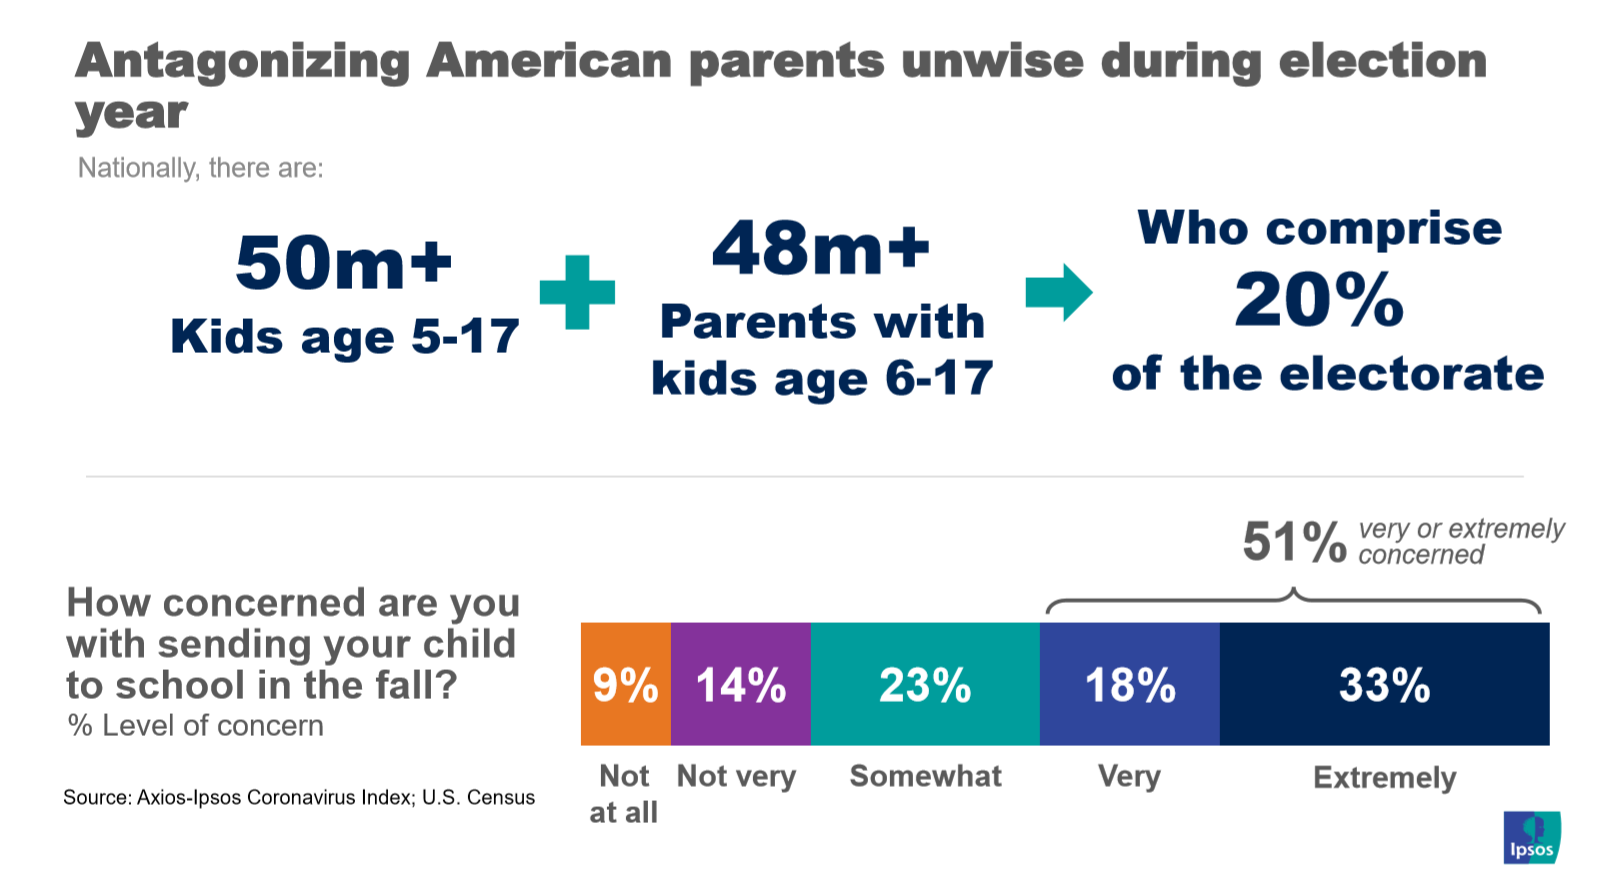 Parents and the electorate